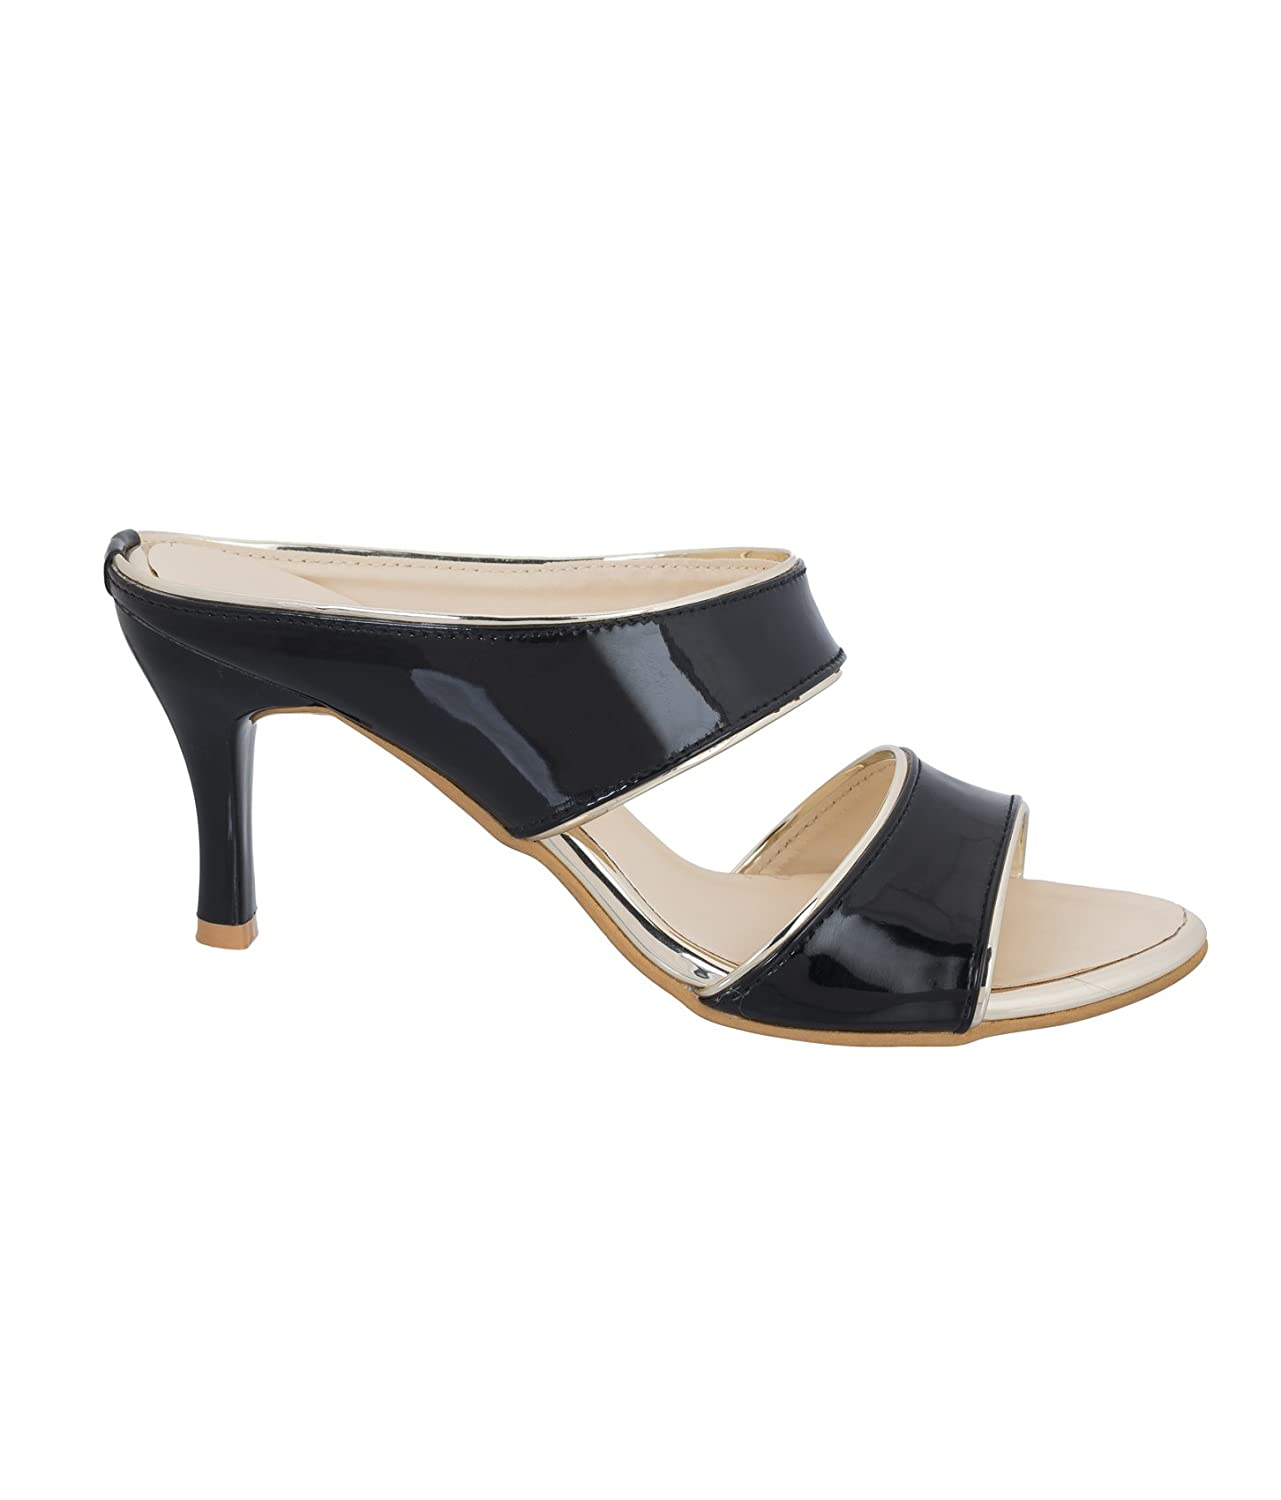 aa6afc8a8c1 Juti Kasoori Sandal for Women Casual Stylish Heel Sandals Latest Arrival  Party Wear Casual Wear Sandals for Women   Girls  Buy Online at Low Prices  in India ...